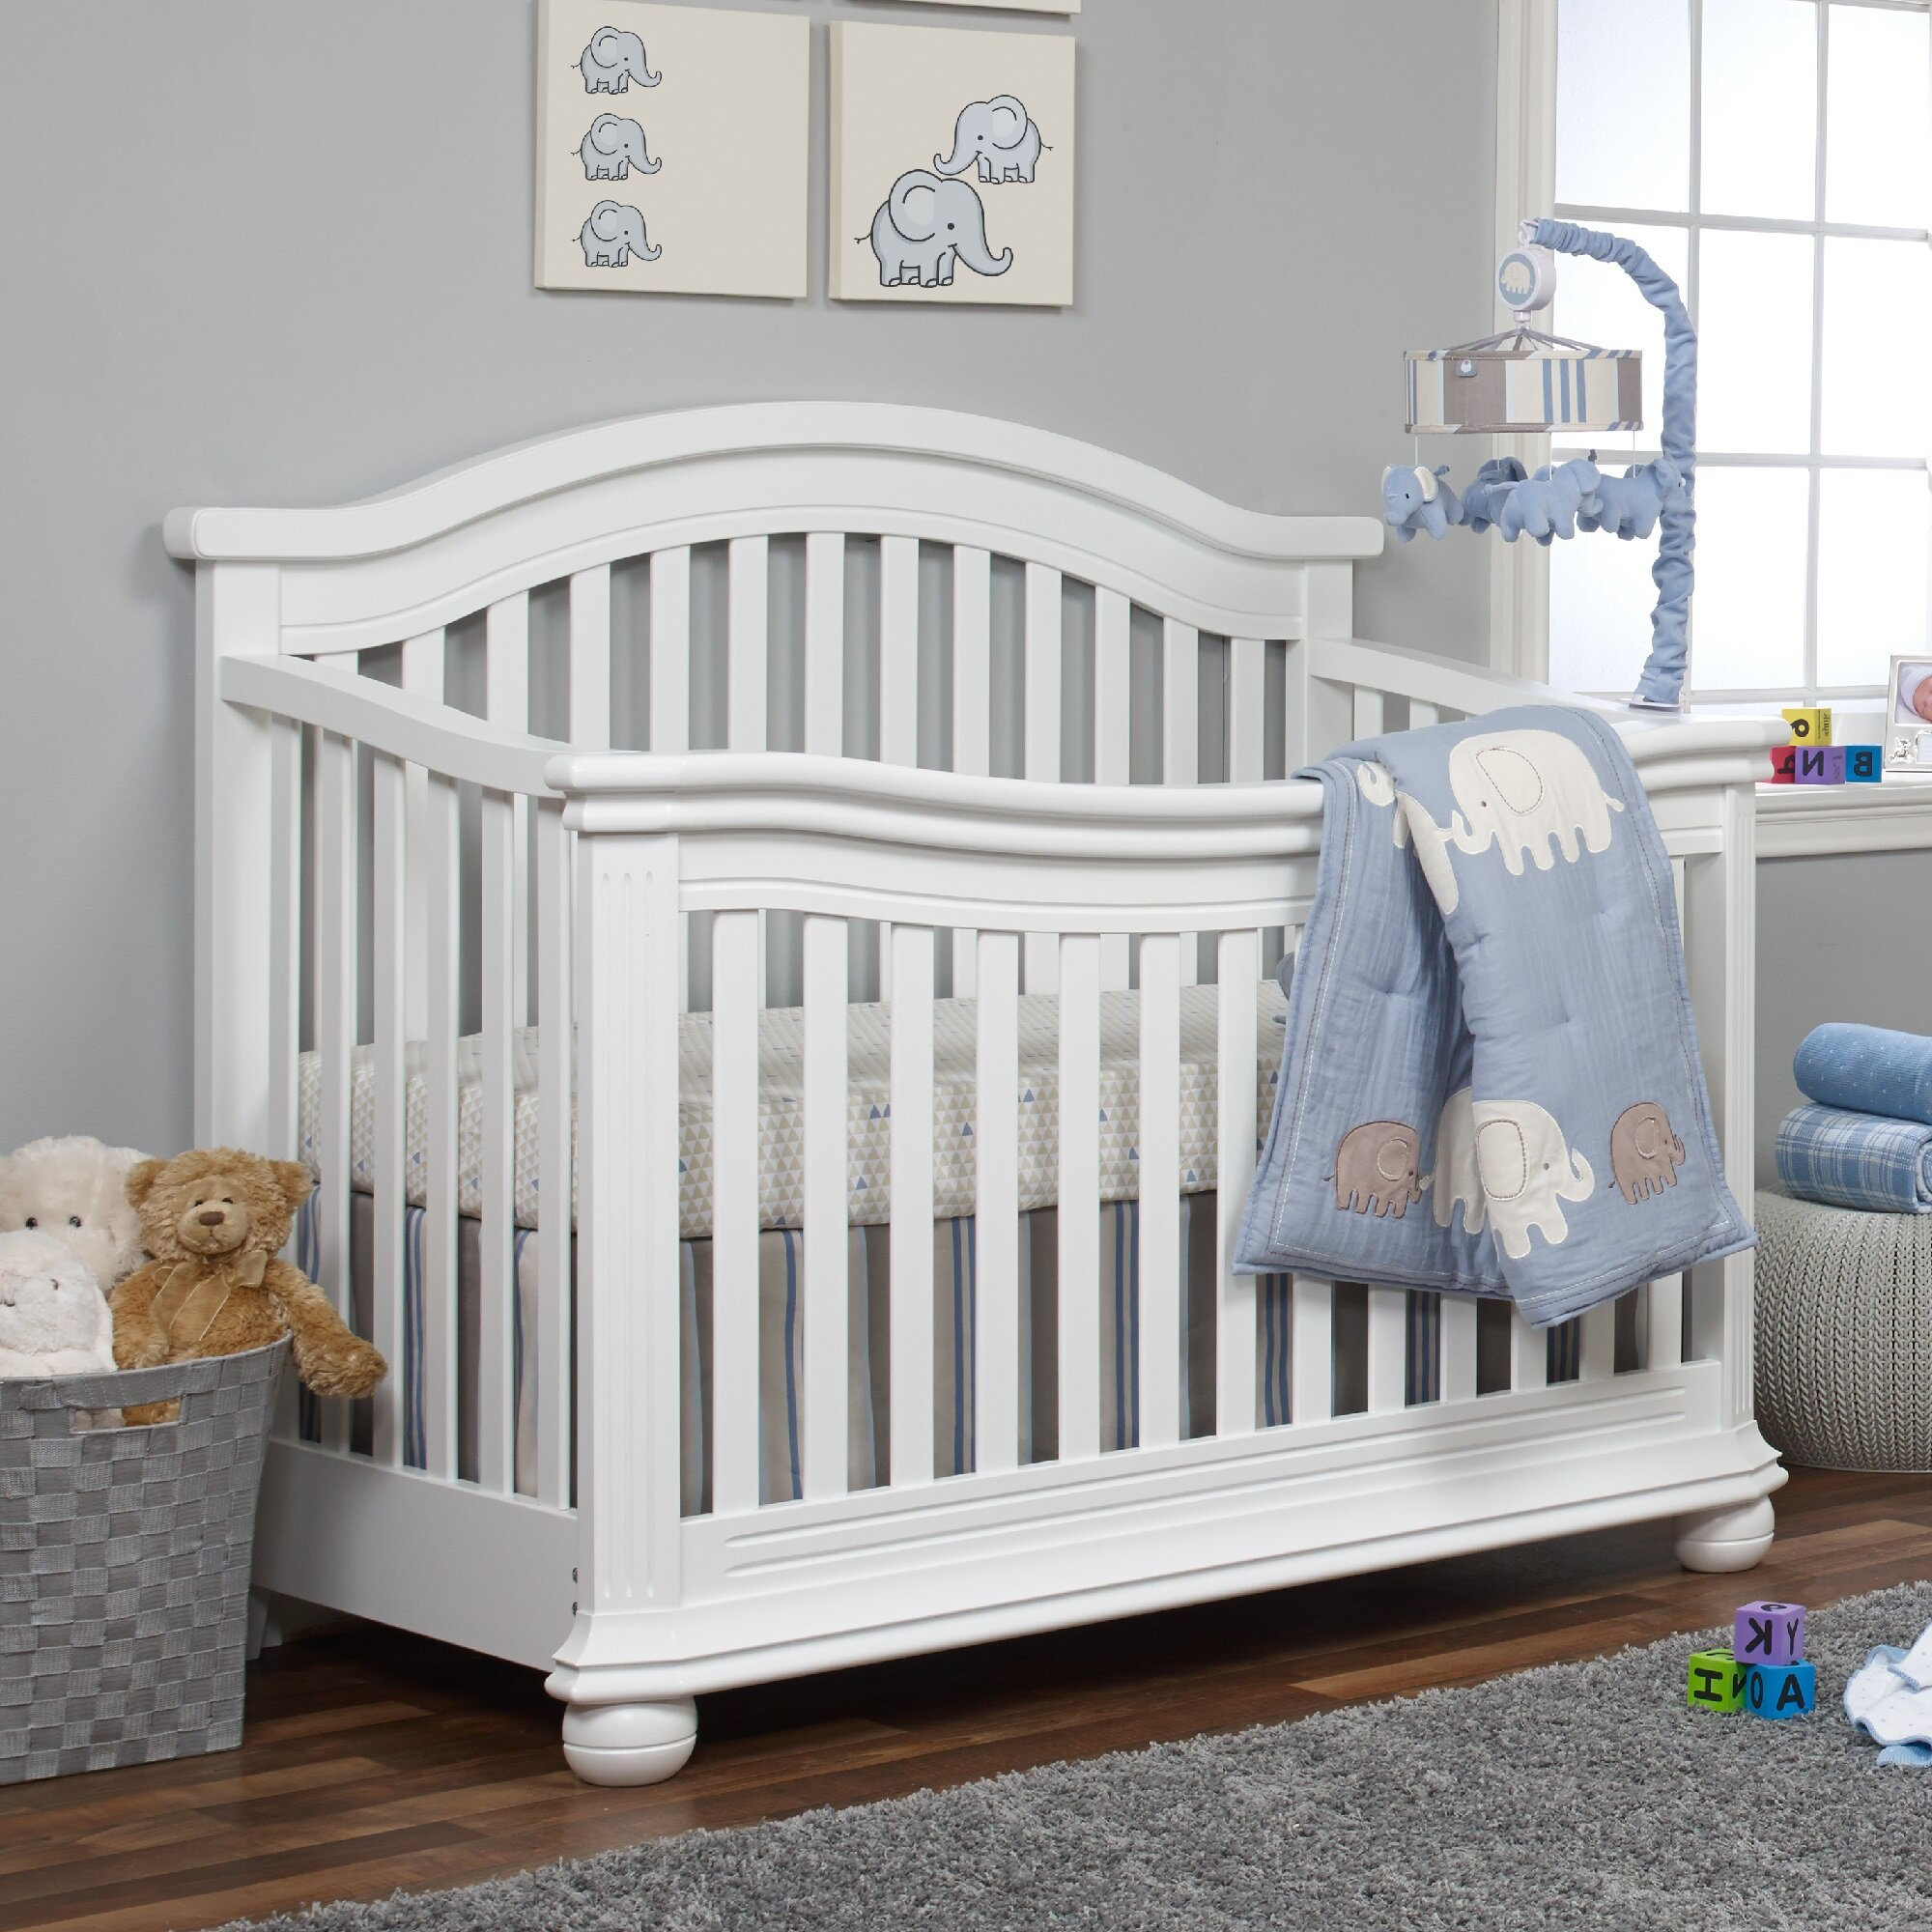 cache graco home in bed of rory turns crib cribs converts ddler convert how that espresso turn to elegant a convertible toddler baby beds excellent charming conversion into vs walmart